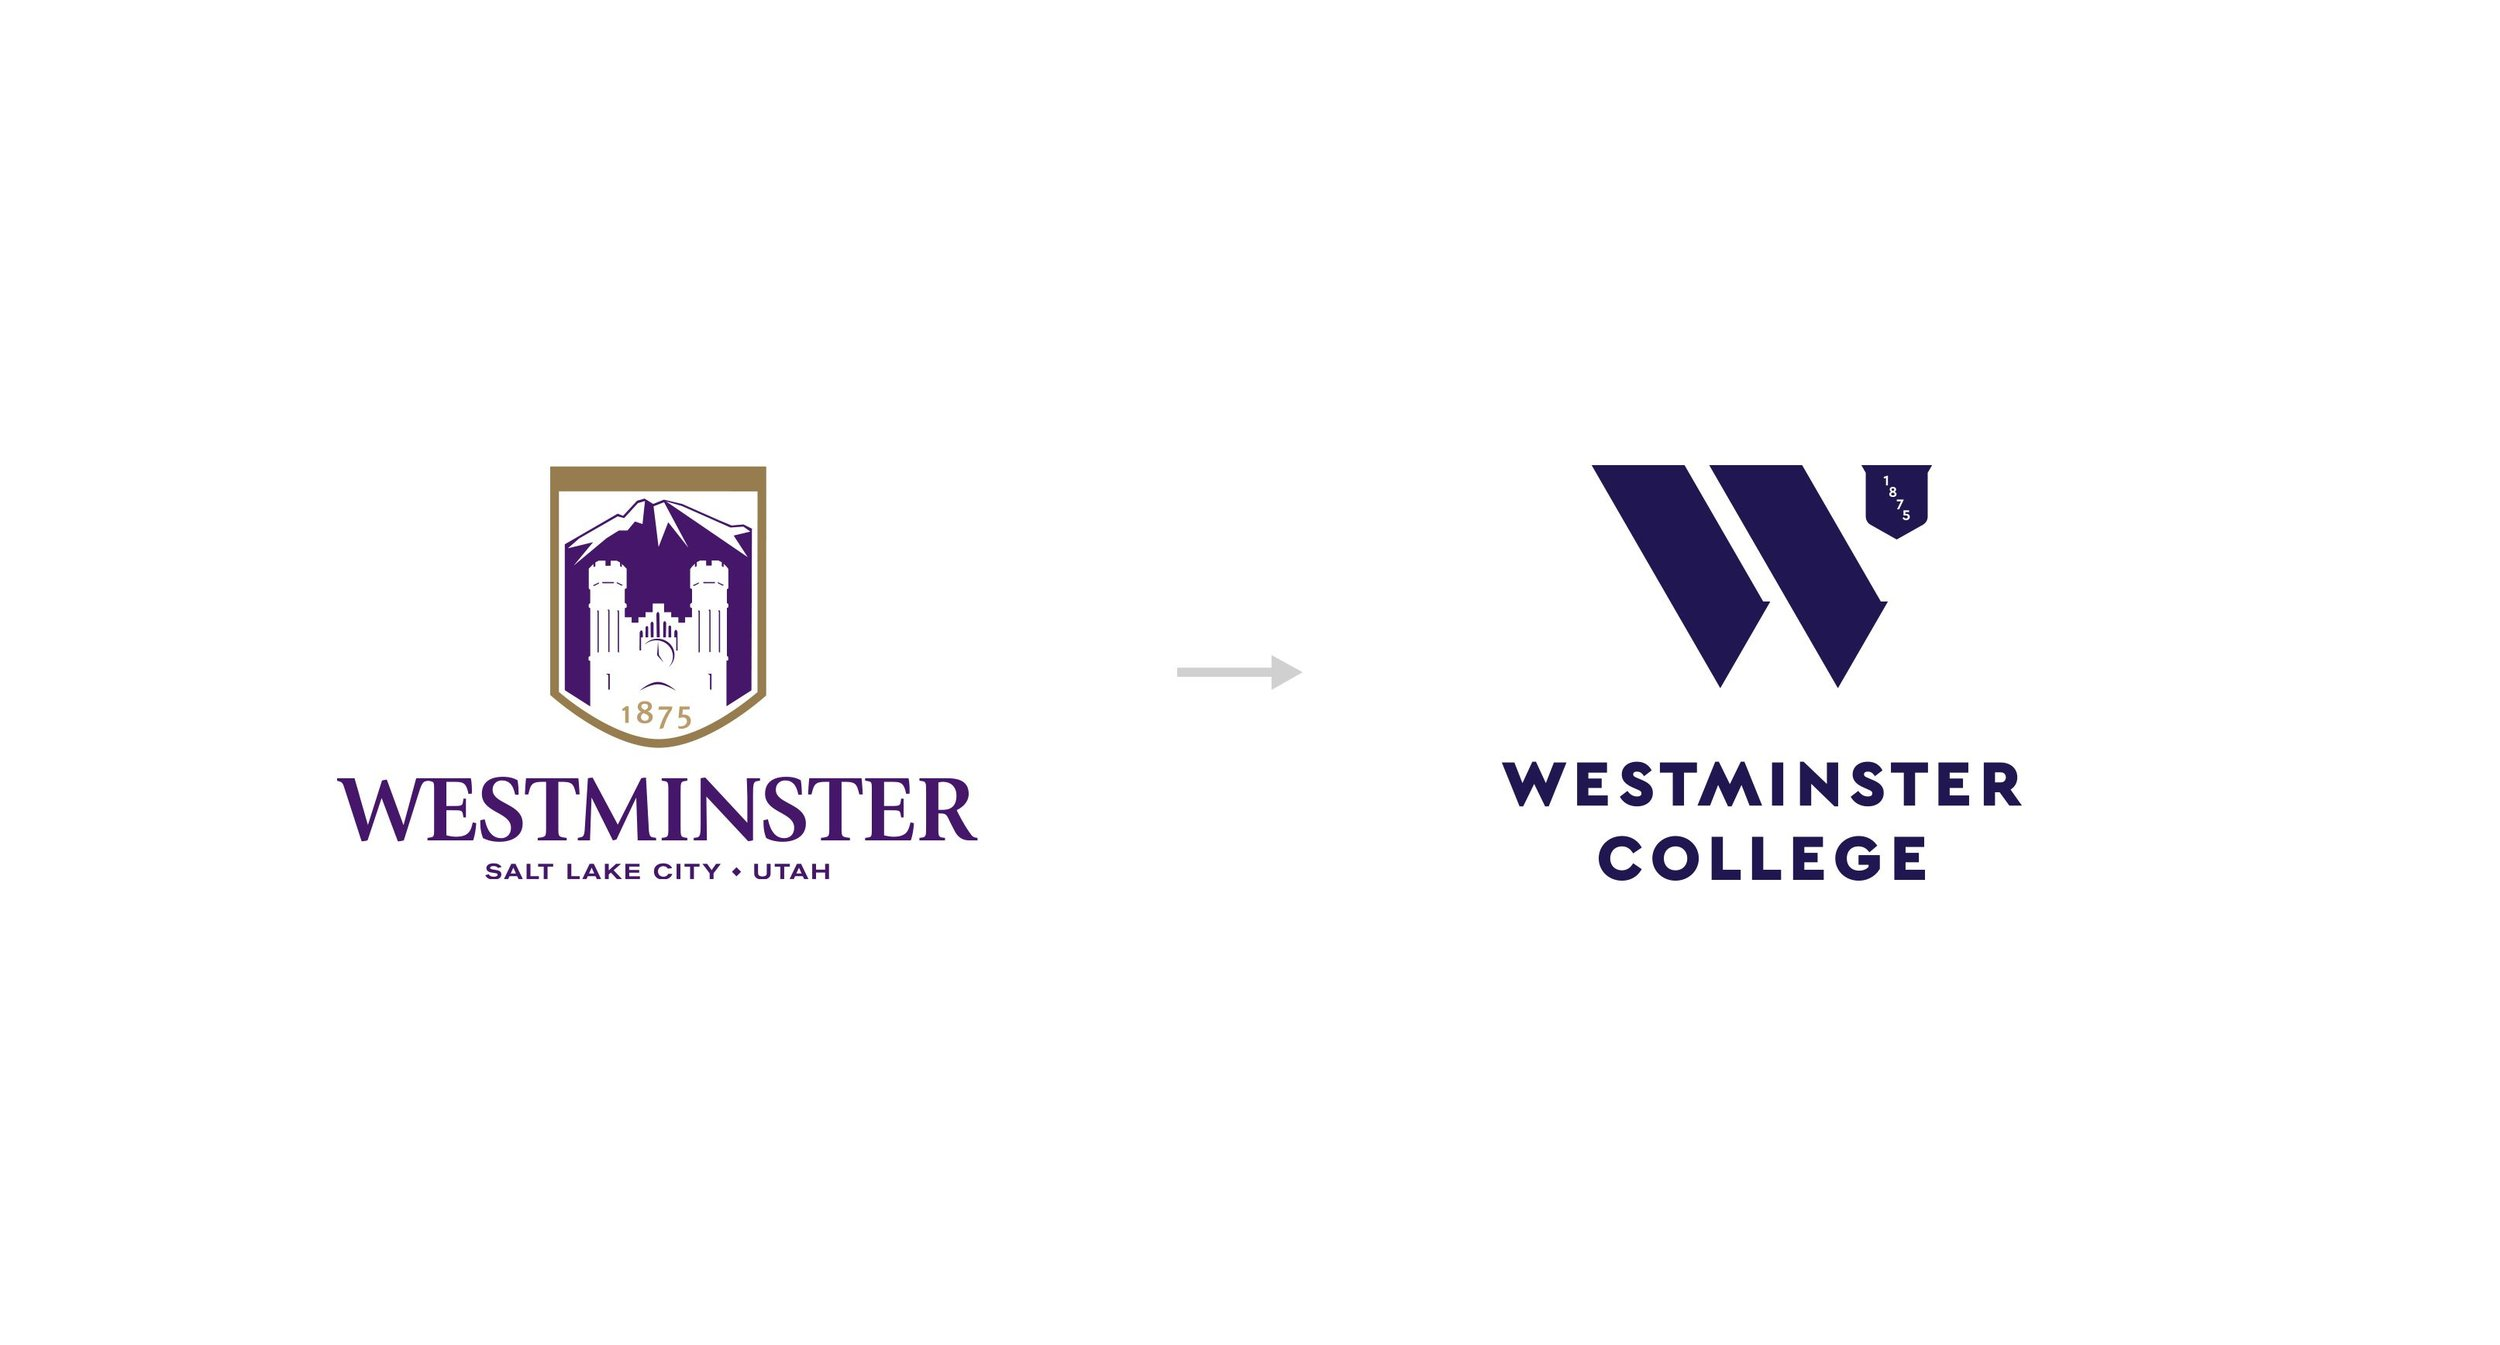 The Old Westminster College Logo and the New Westminster College Logo.